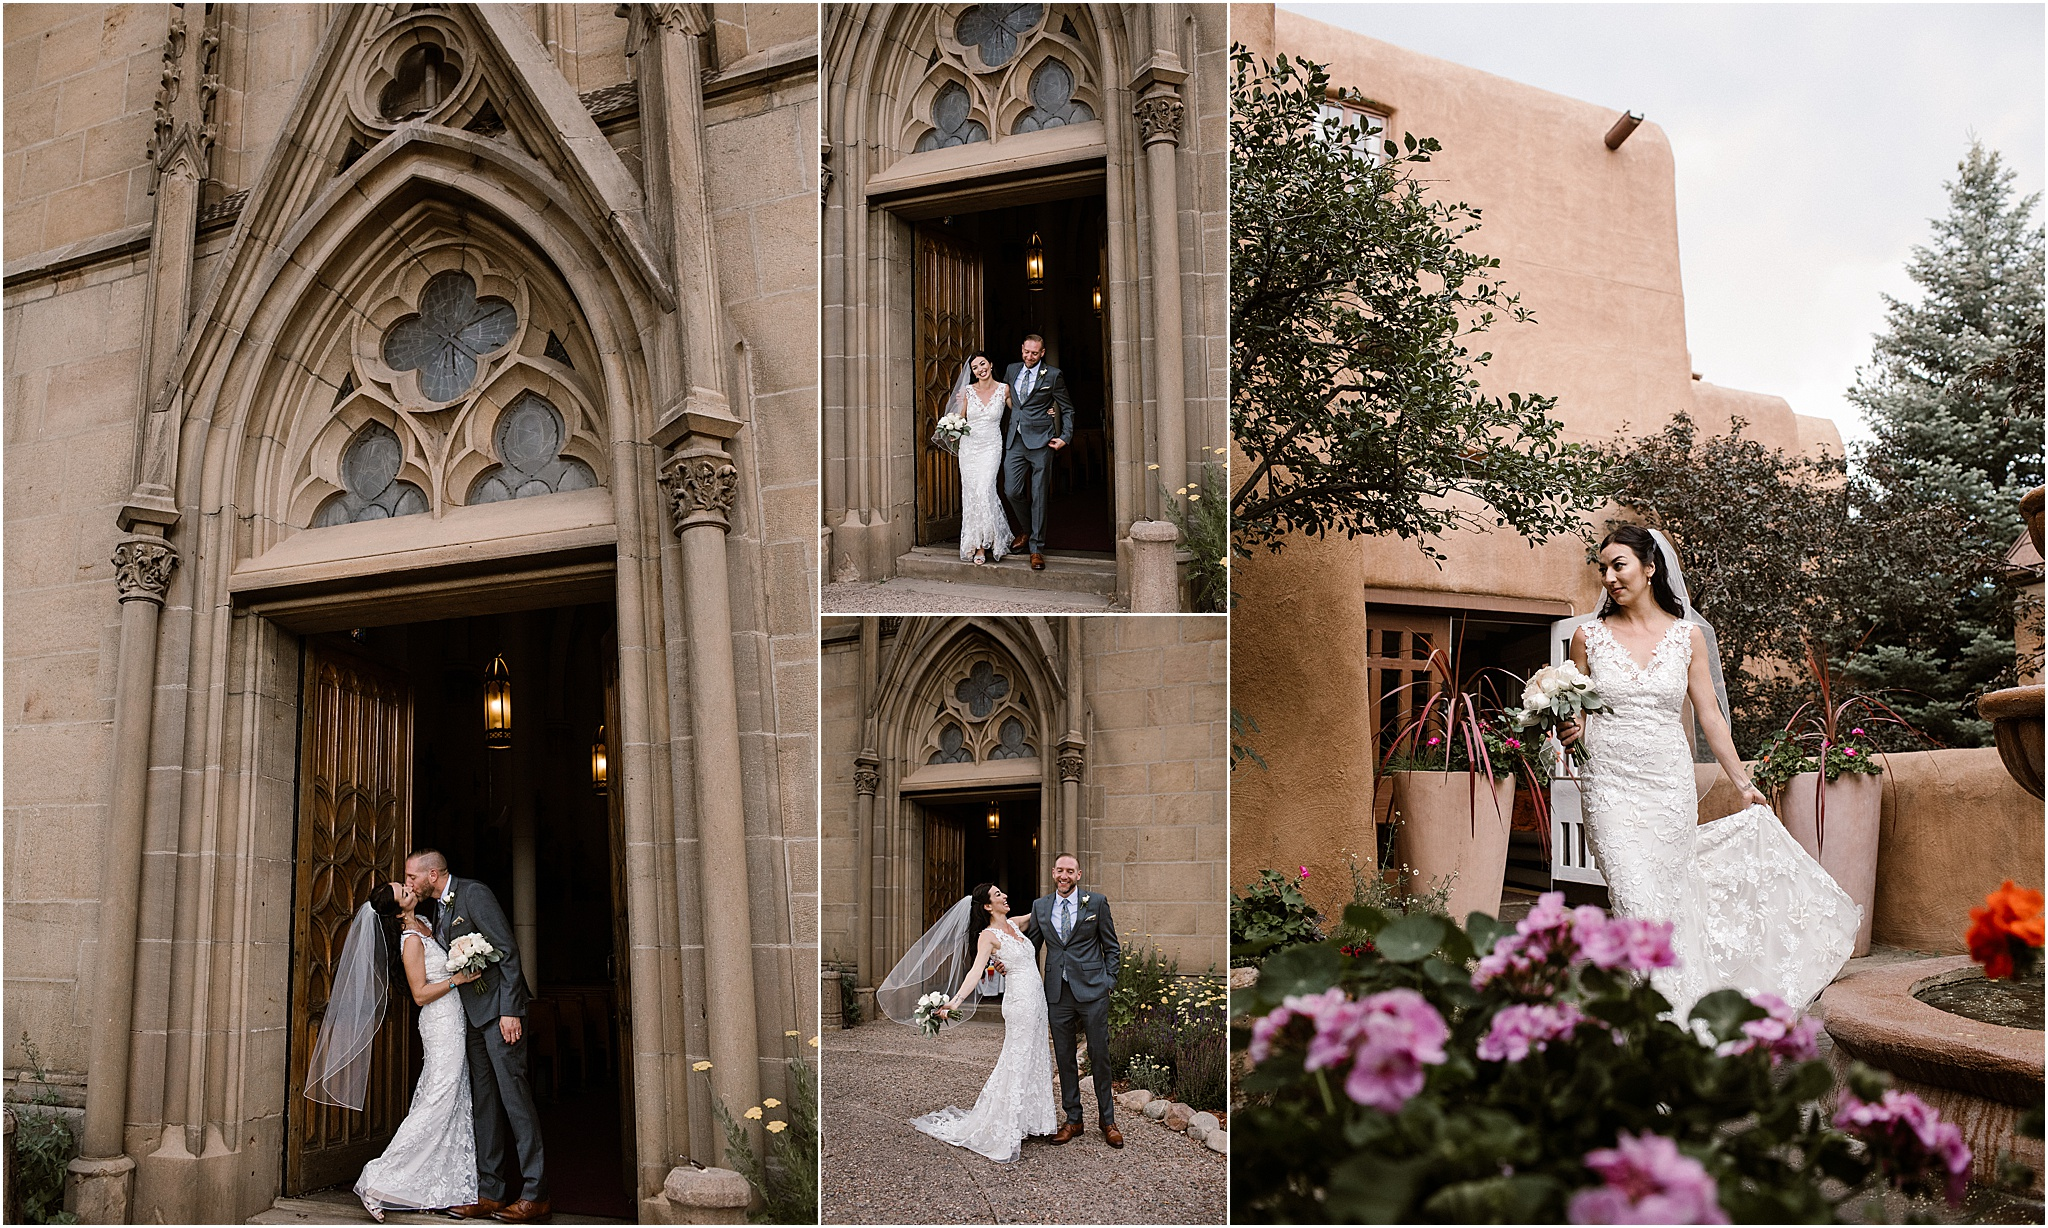 BlueRosePhotography_LaurenandCharles_LorettoChapel19